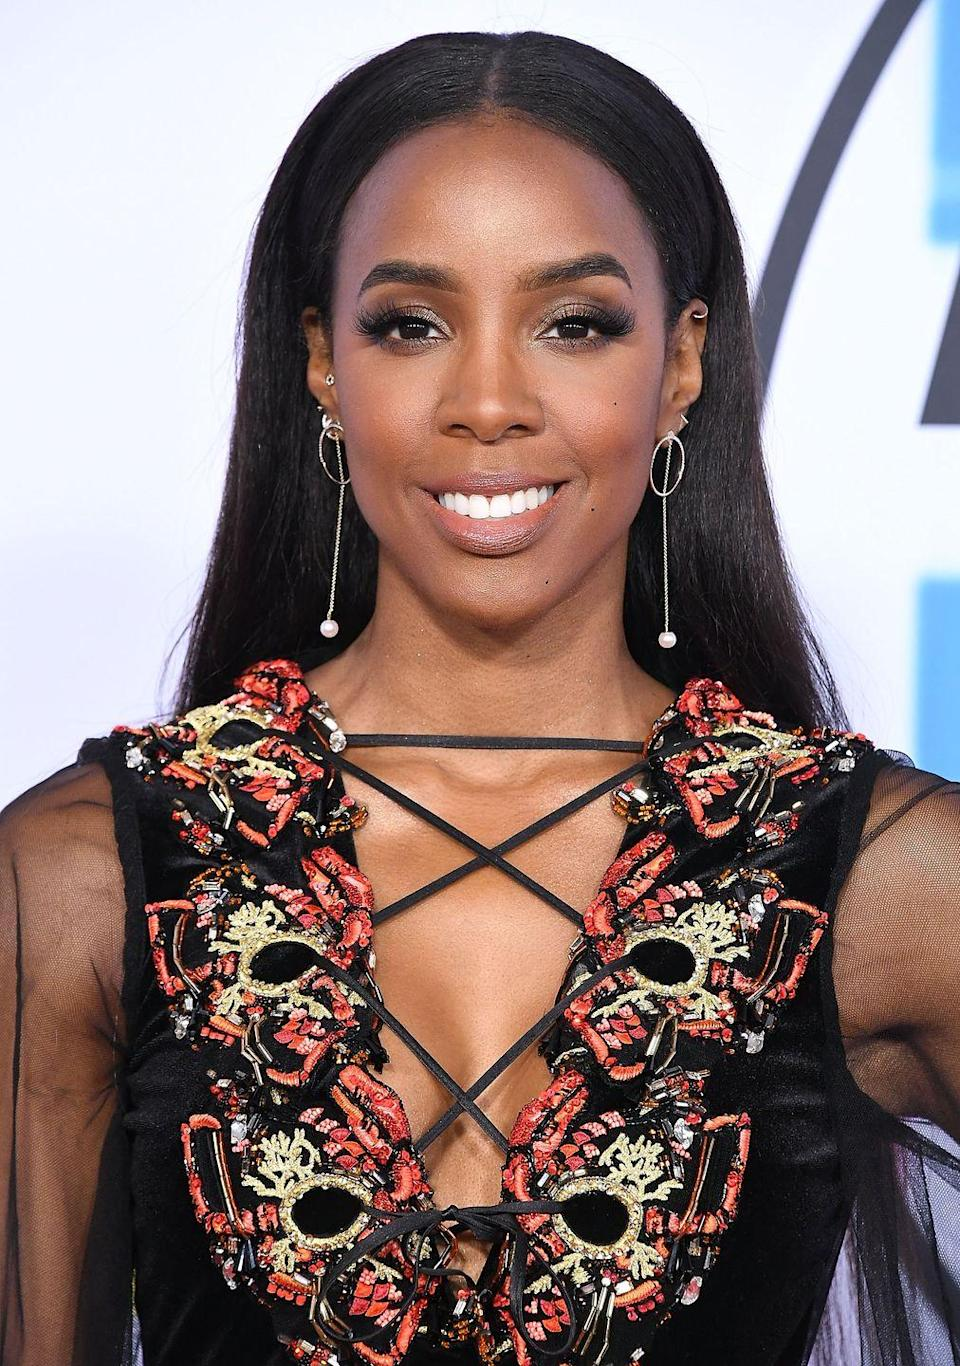 """<p>""""I wanted to get breast implants when I was 18, but my mom and Beyoncé's mom told me to really think about it first,"""" the former Destiny's Child singer told <a href=""""http://www.shape.com/blogs/fit-famous/kelly-rowland-flaunts-her-x-factor-cover-shape"""" rel=""""nofollow noopener"""" target=""""_blank"""" data-ylk=""""slk:Shape magazine"""" class=""""link rapid-noclick-resp"""">Shape magazine</a>. """"I took their advice and waited 10 years.""""</p>"""